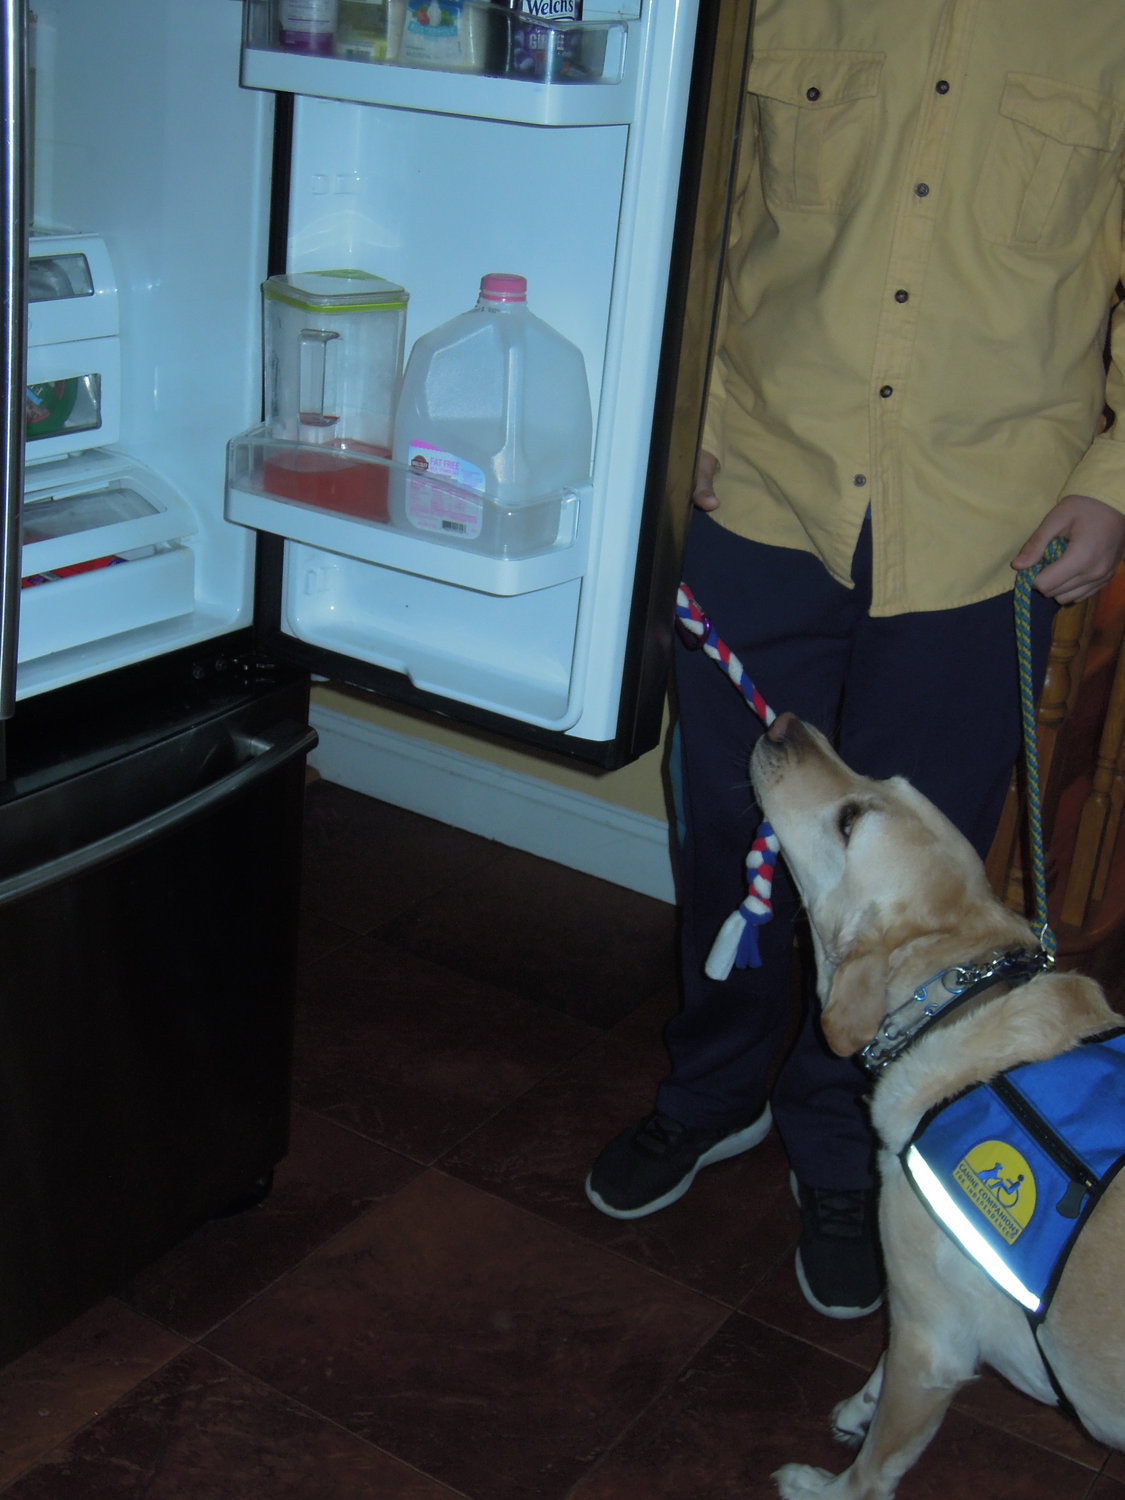 Dragon demonstrates that he has retained the full range of skills, including opening the refrigerator.